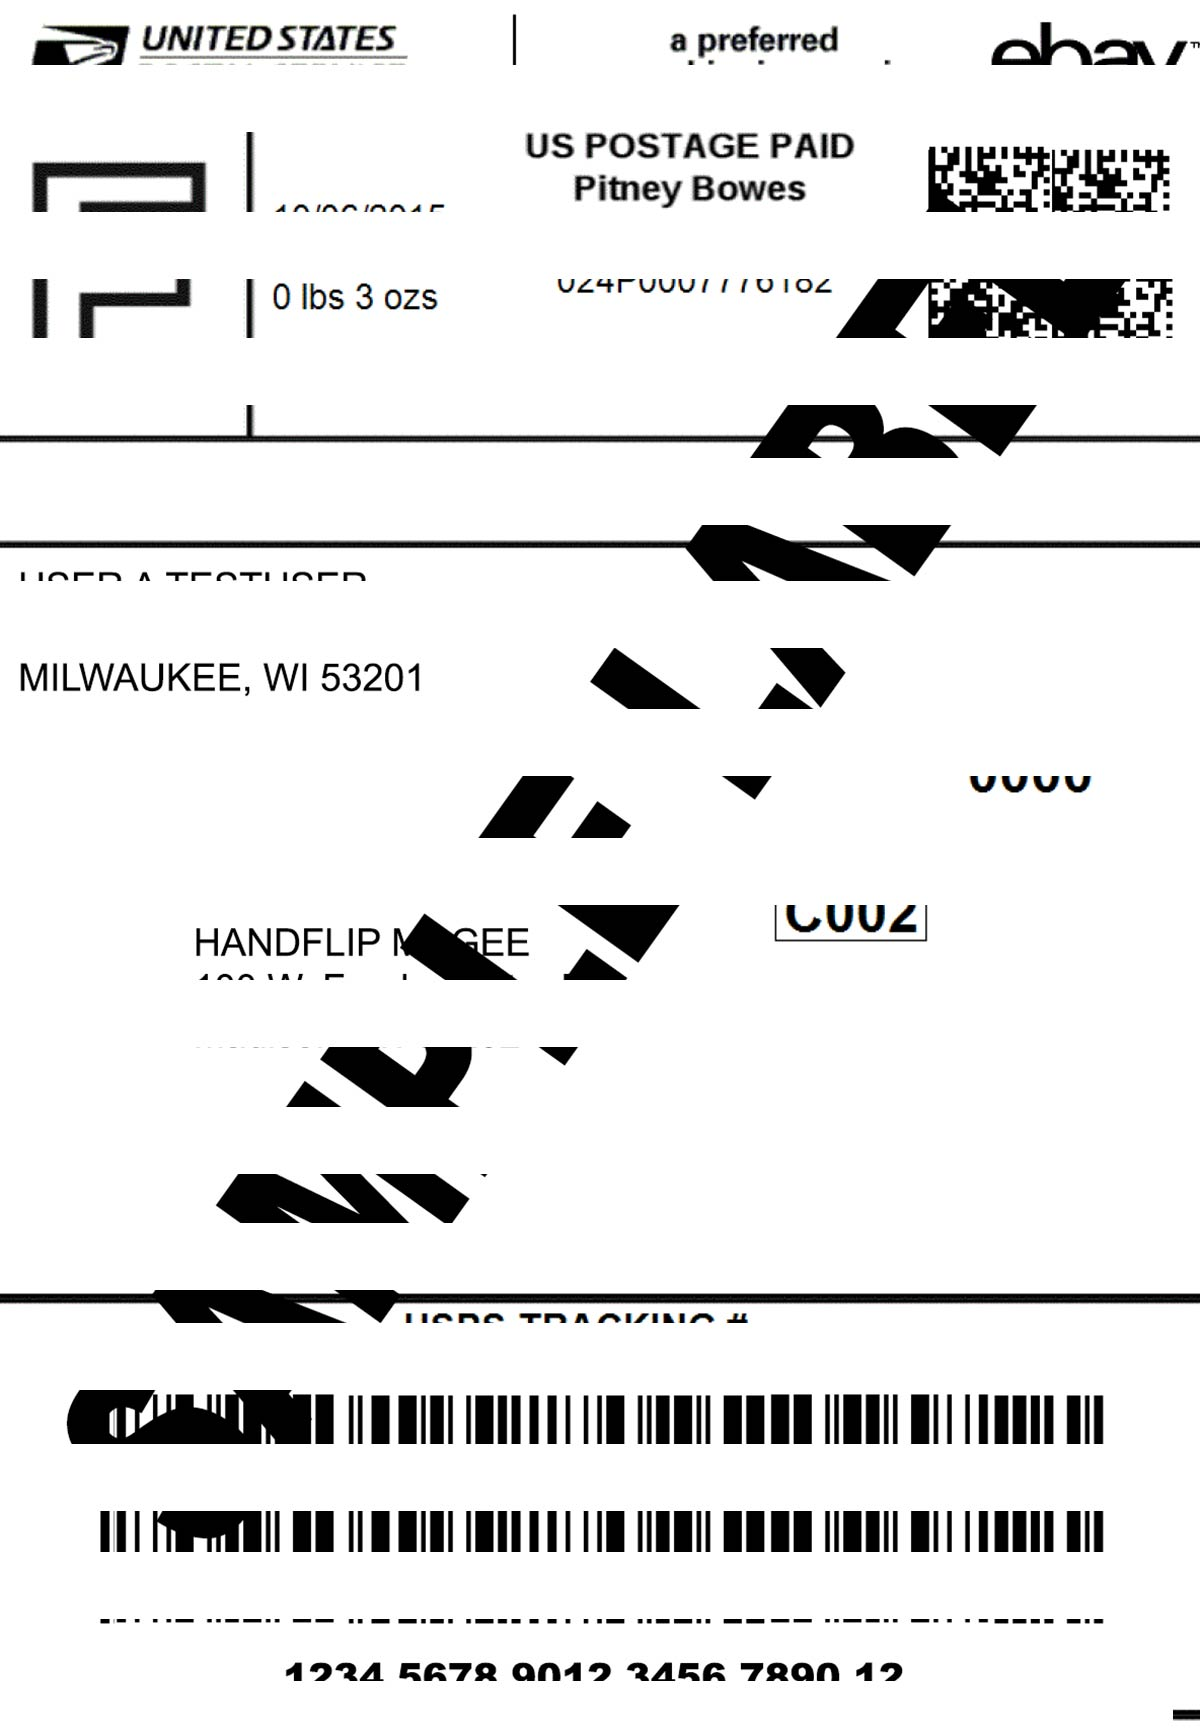 Thermal Printer Test - Shipping Label - Repetitive Horizonal Lines.